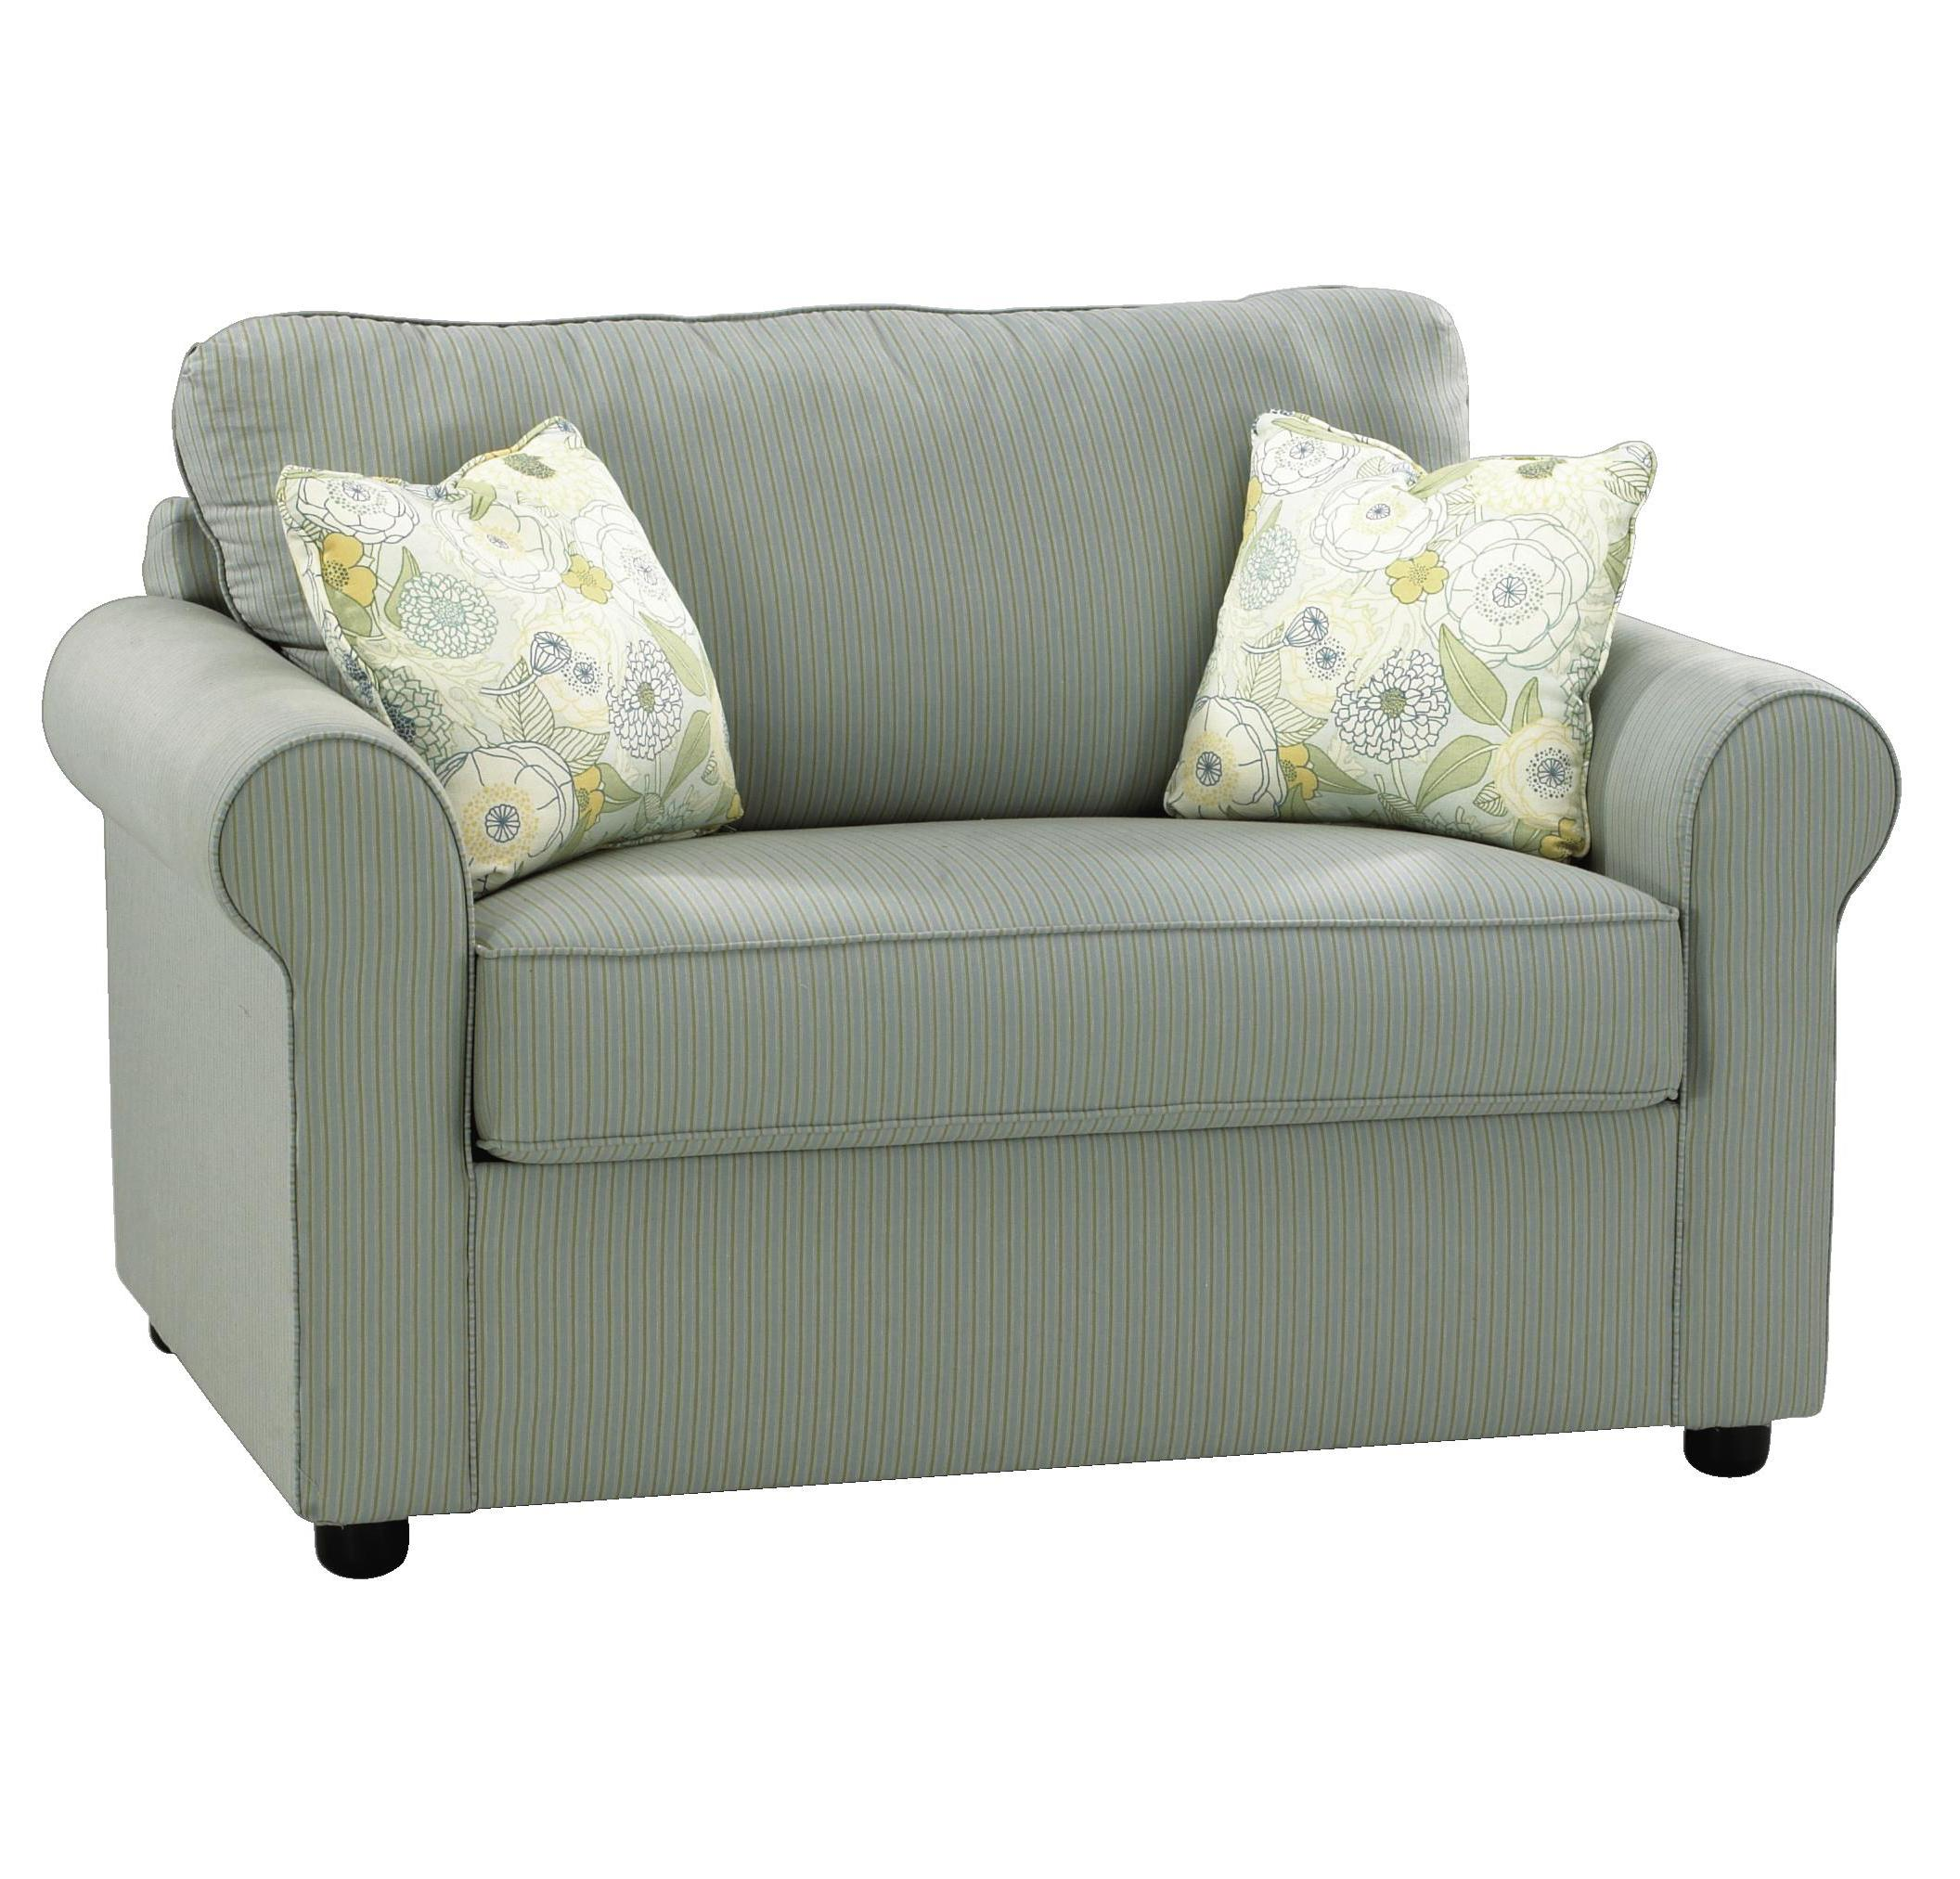 chair and half sleeper sofa flexsteel bexley traditional with nailhead trim klaussner brighton dreamquest a